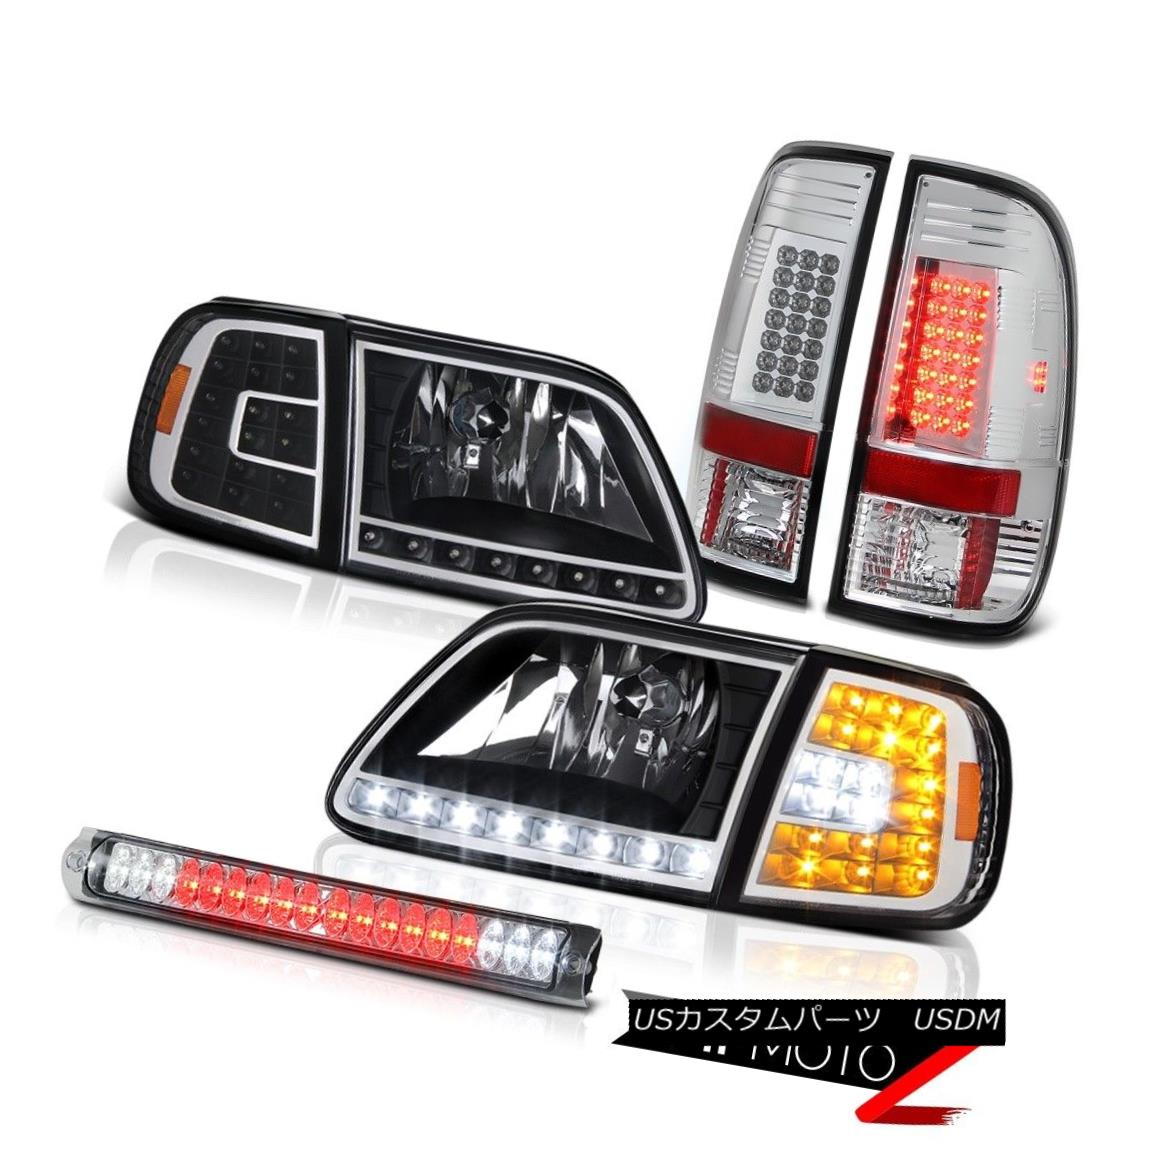 ヘッドライト 1997-2003 F150 Lariat LED Corner+Headlights Chrome Taillights High Brake Cargo 1997-2003 F150ラリアートLEDコーナー+ヘッドリッグ